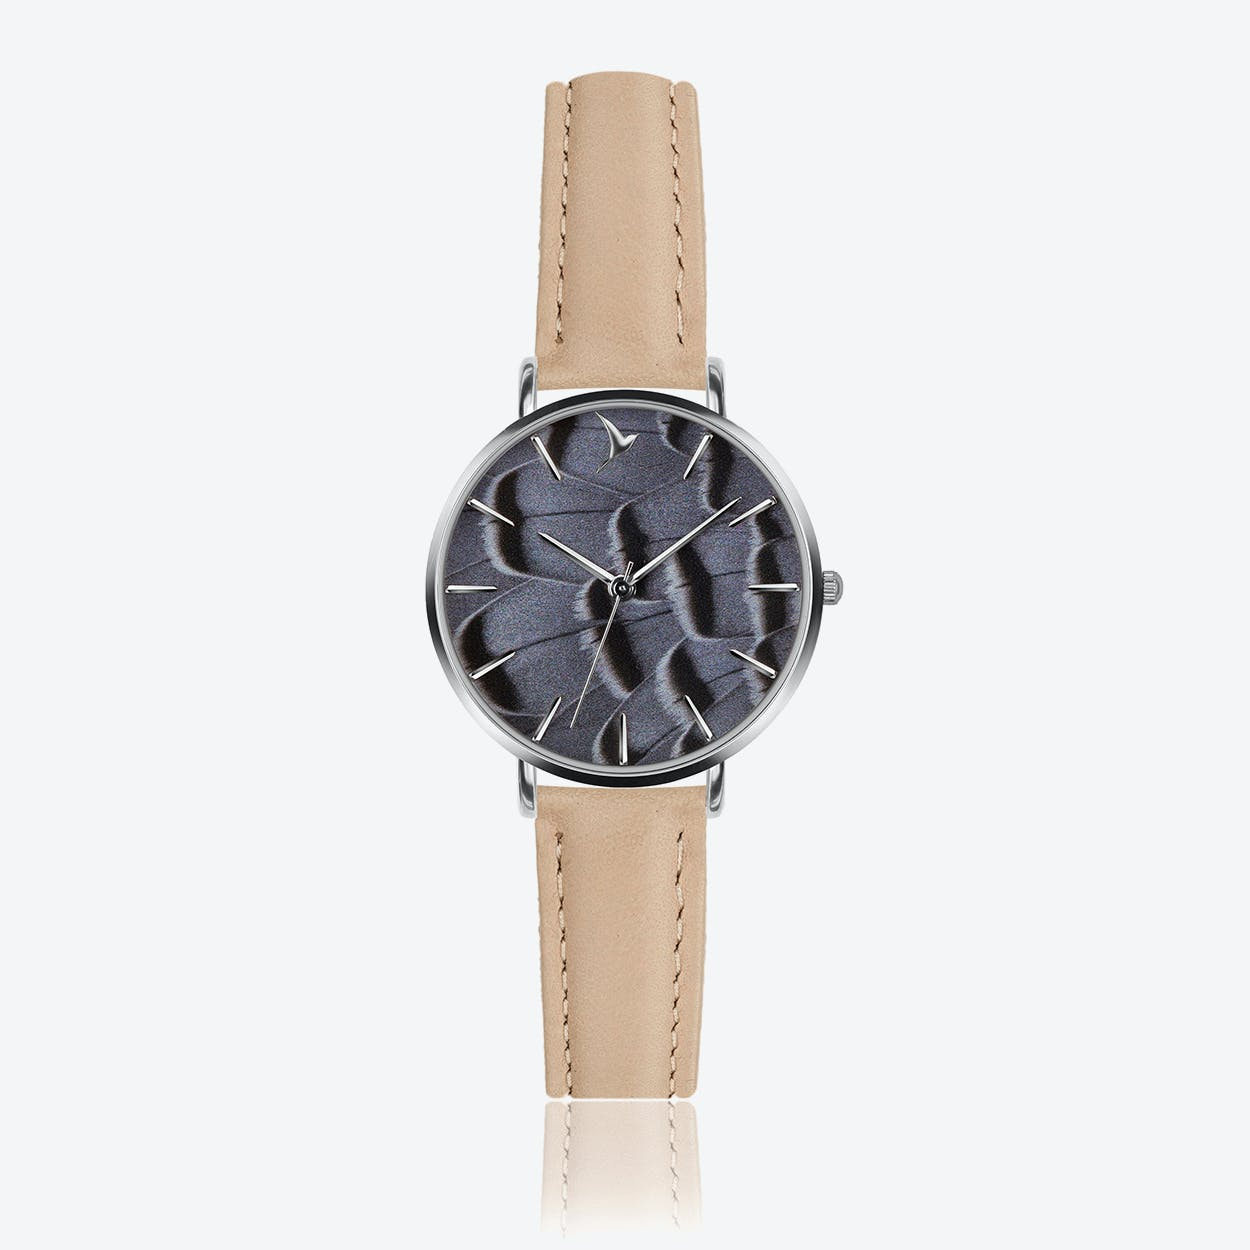 Feather Print Watch in Cream Powder Leather/ Silver Case ⌀33